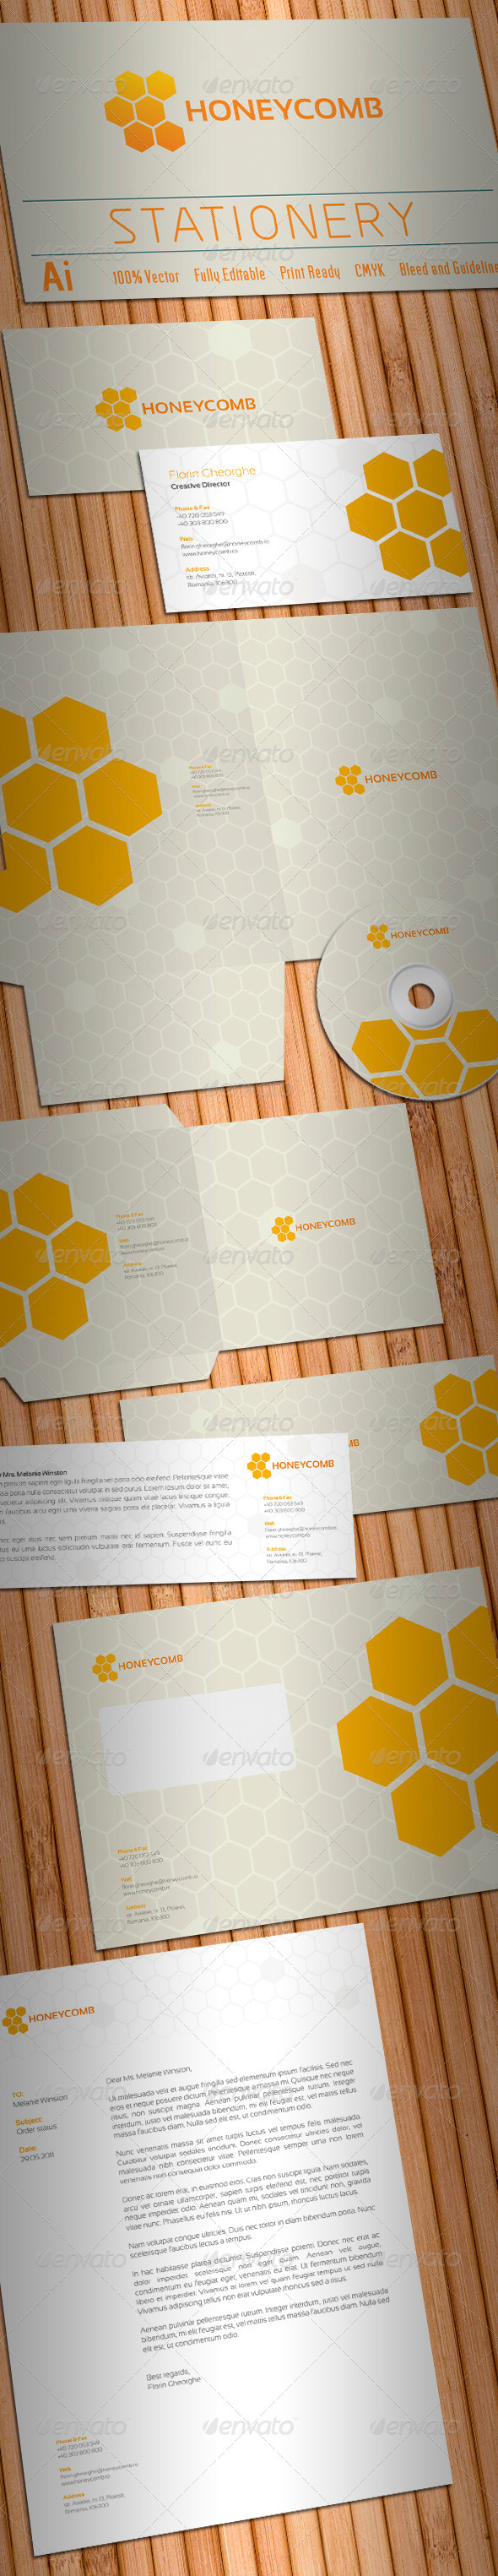 GraphicRiver Honeycomb Stationery 1270554